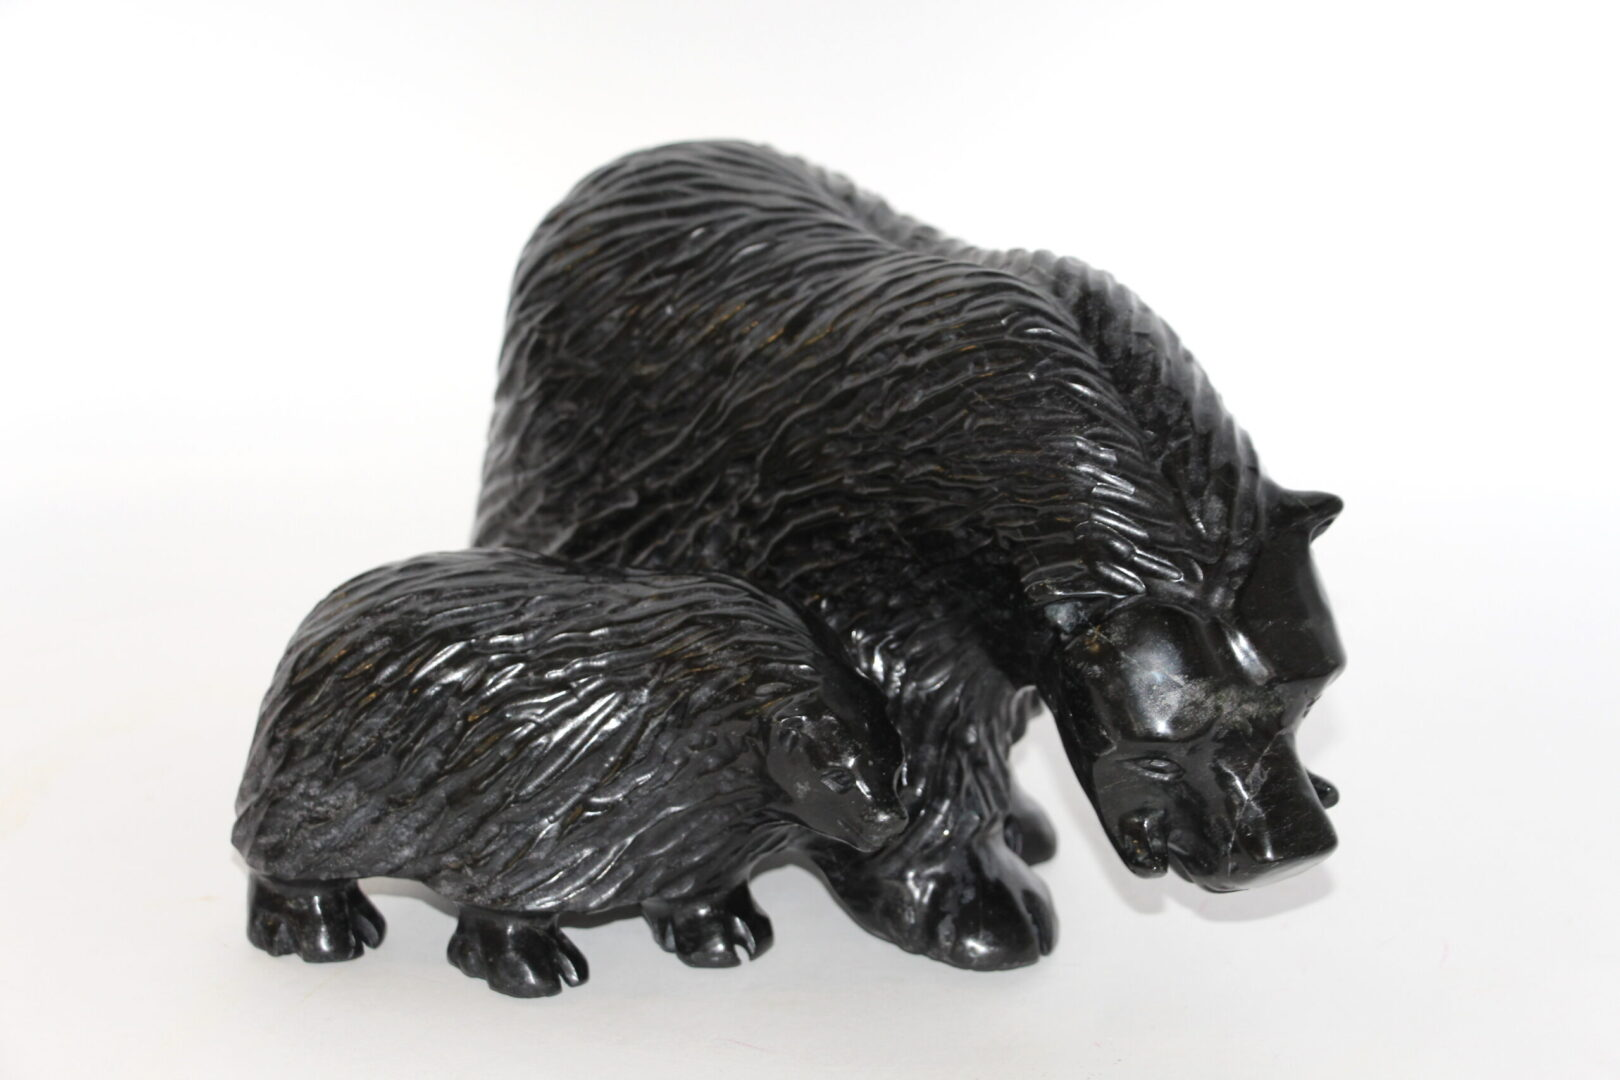 muskox Inuit Art Sculpture in Serpentine